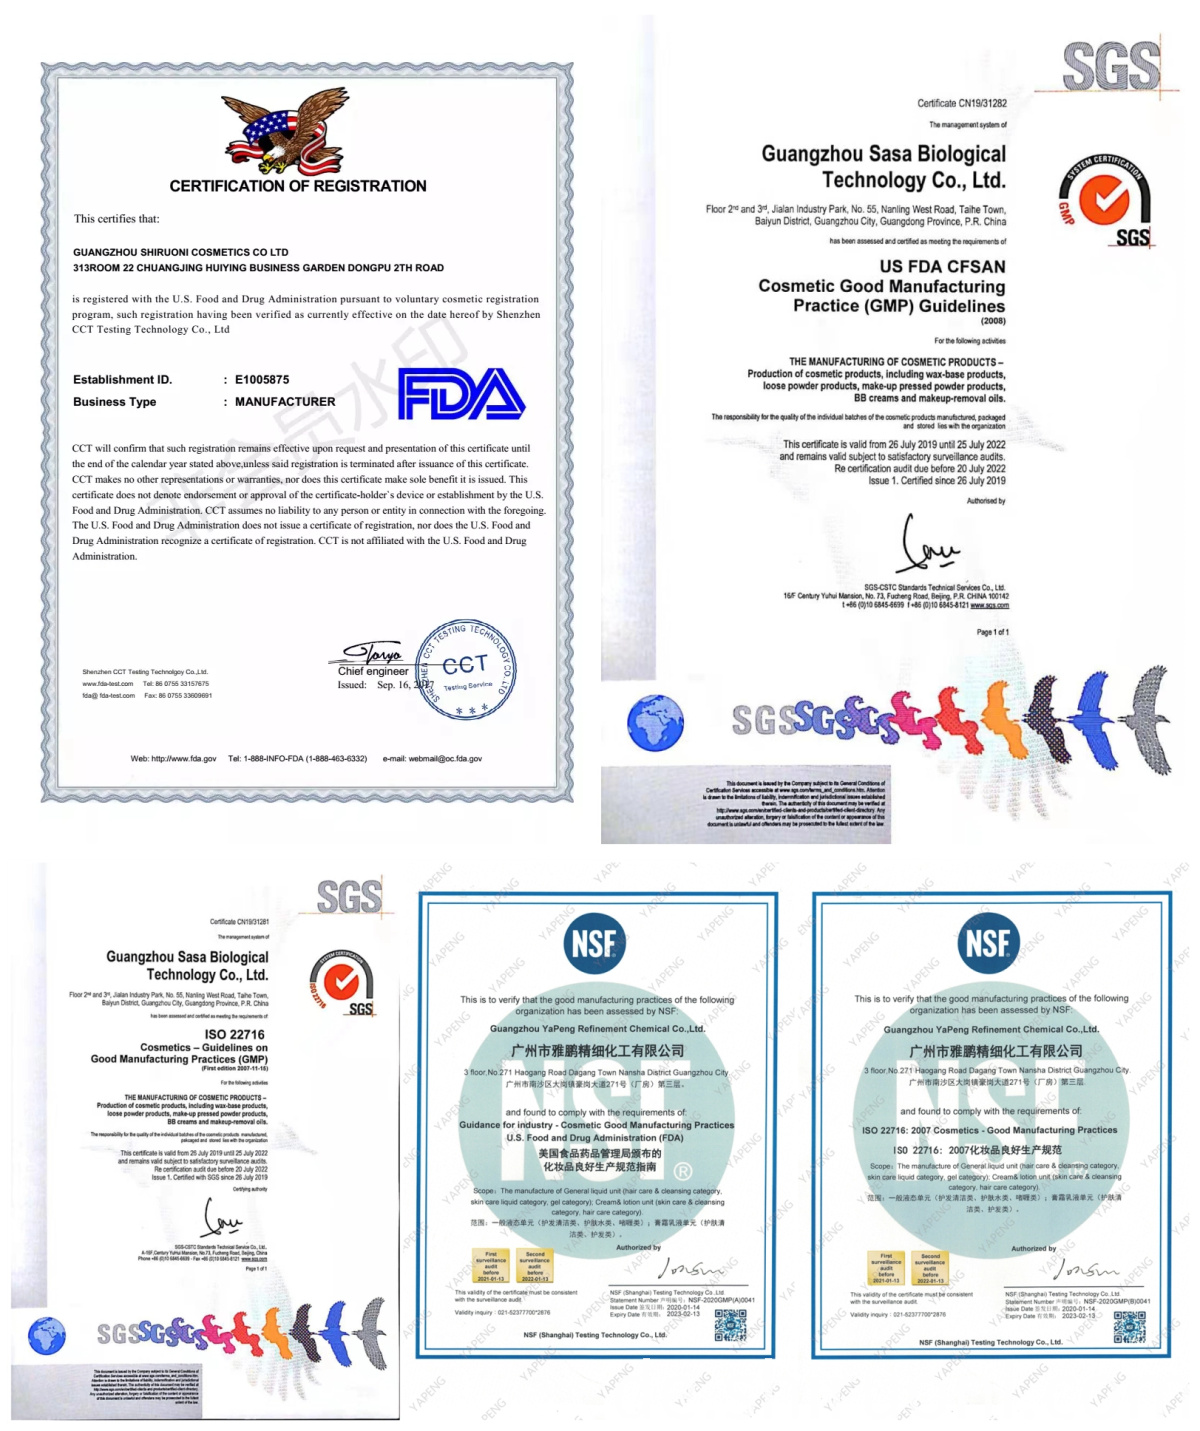 Shiruoni Certificates